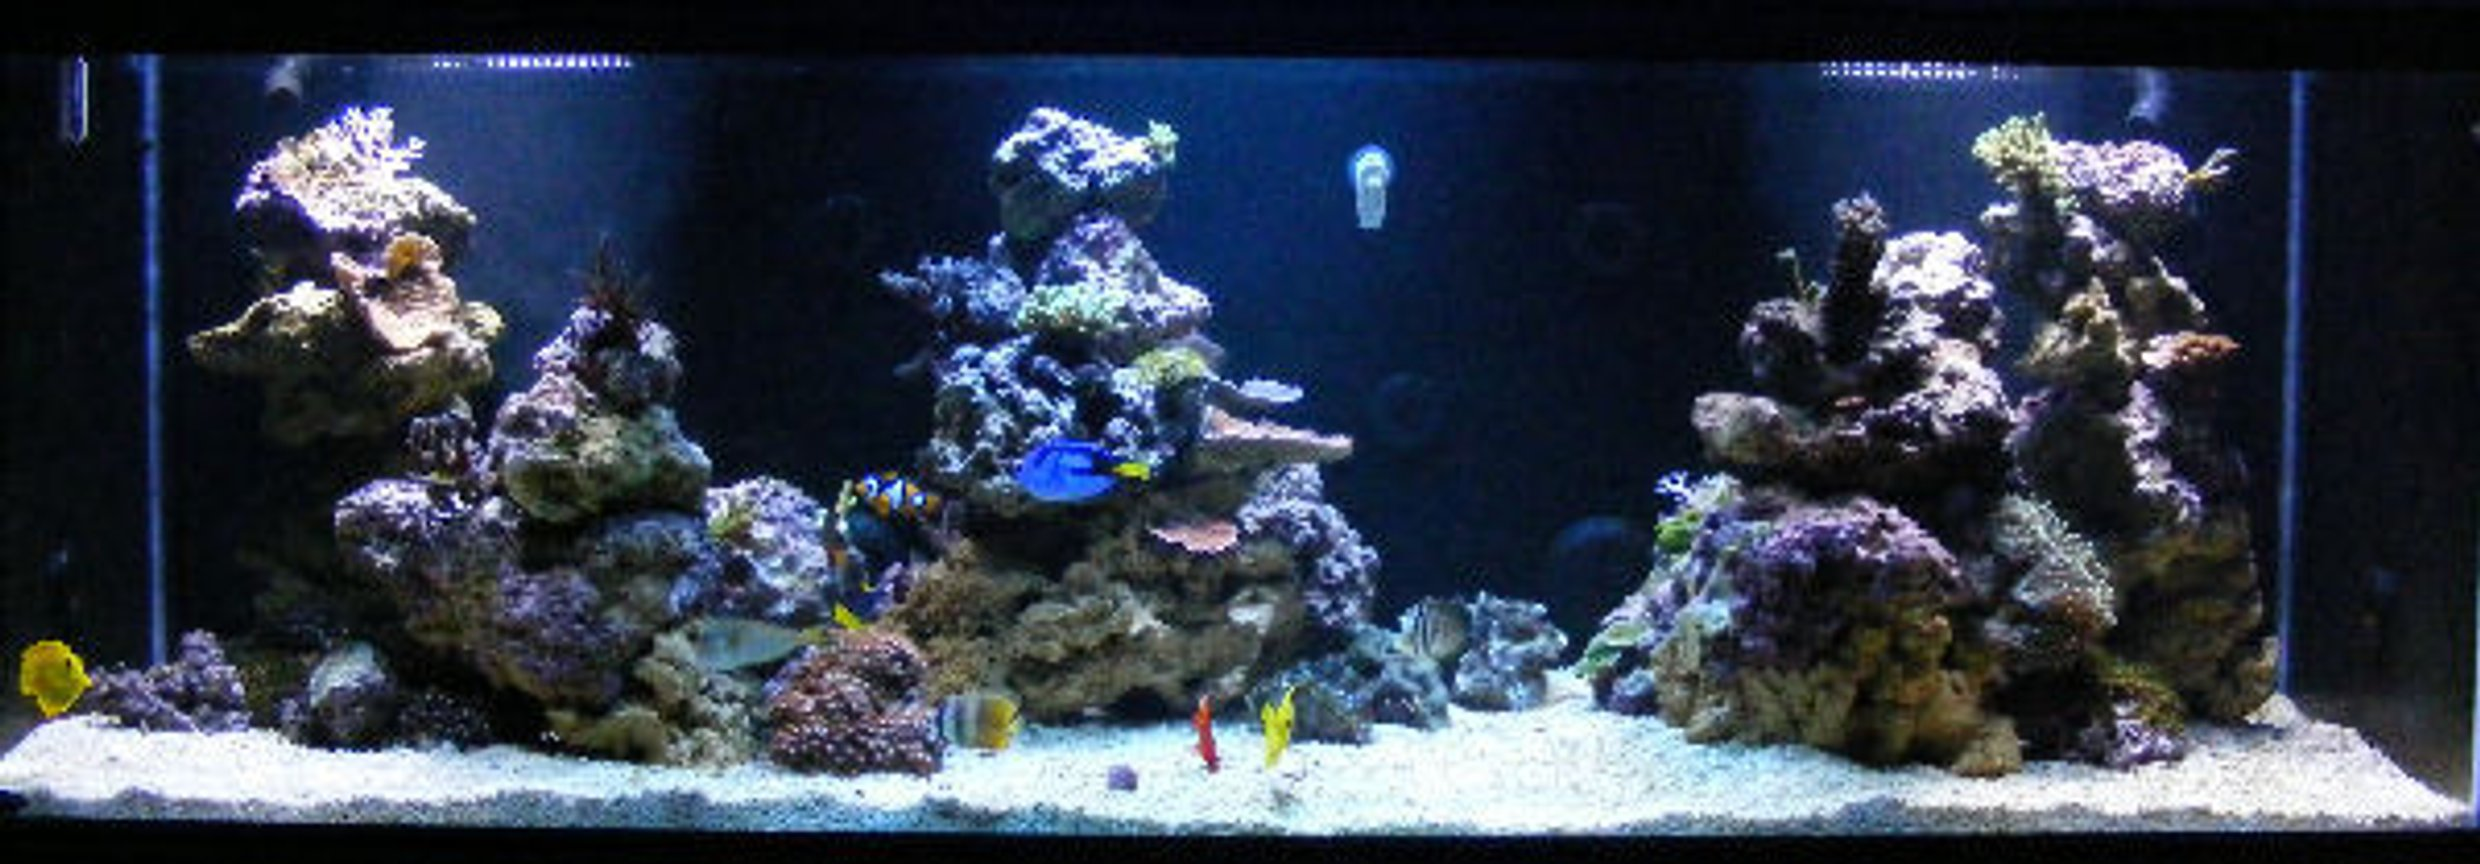 180 gallons reef tank (mostly live coral and fish) - 180g In-wall system